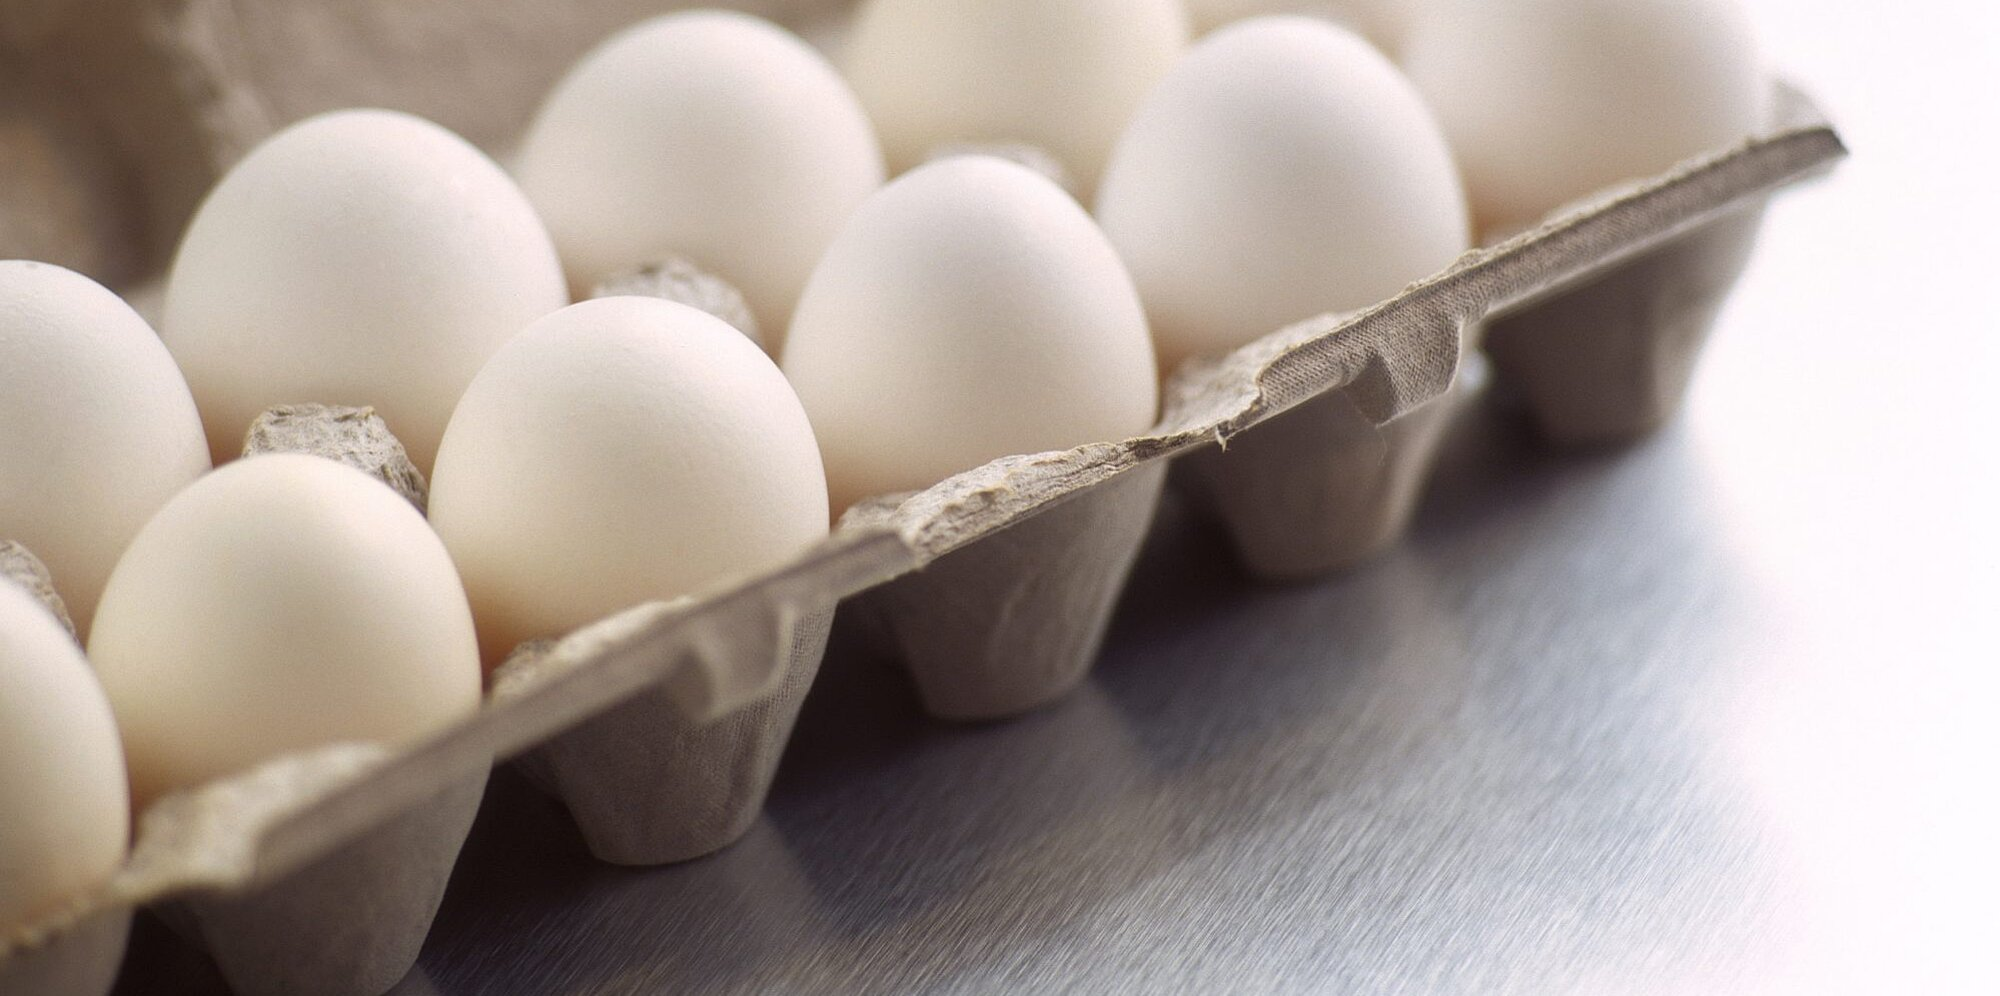 how to tell if your eggs are bad